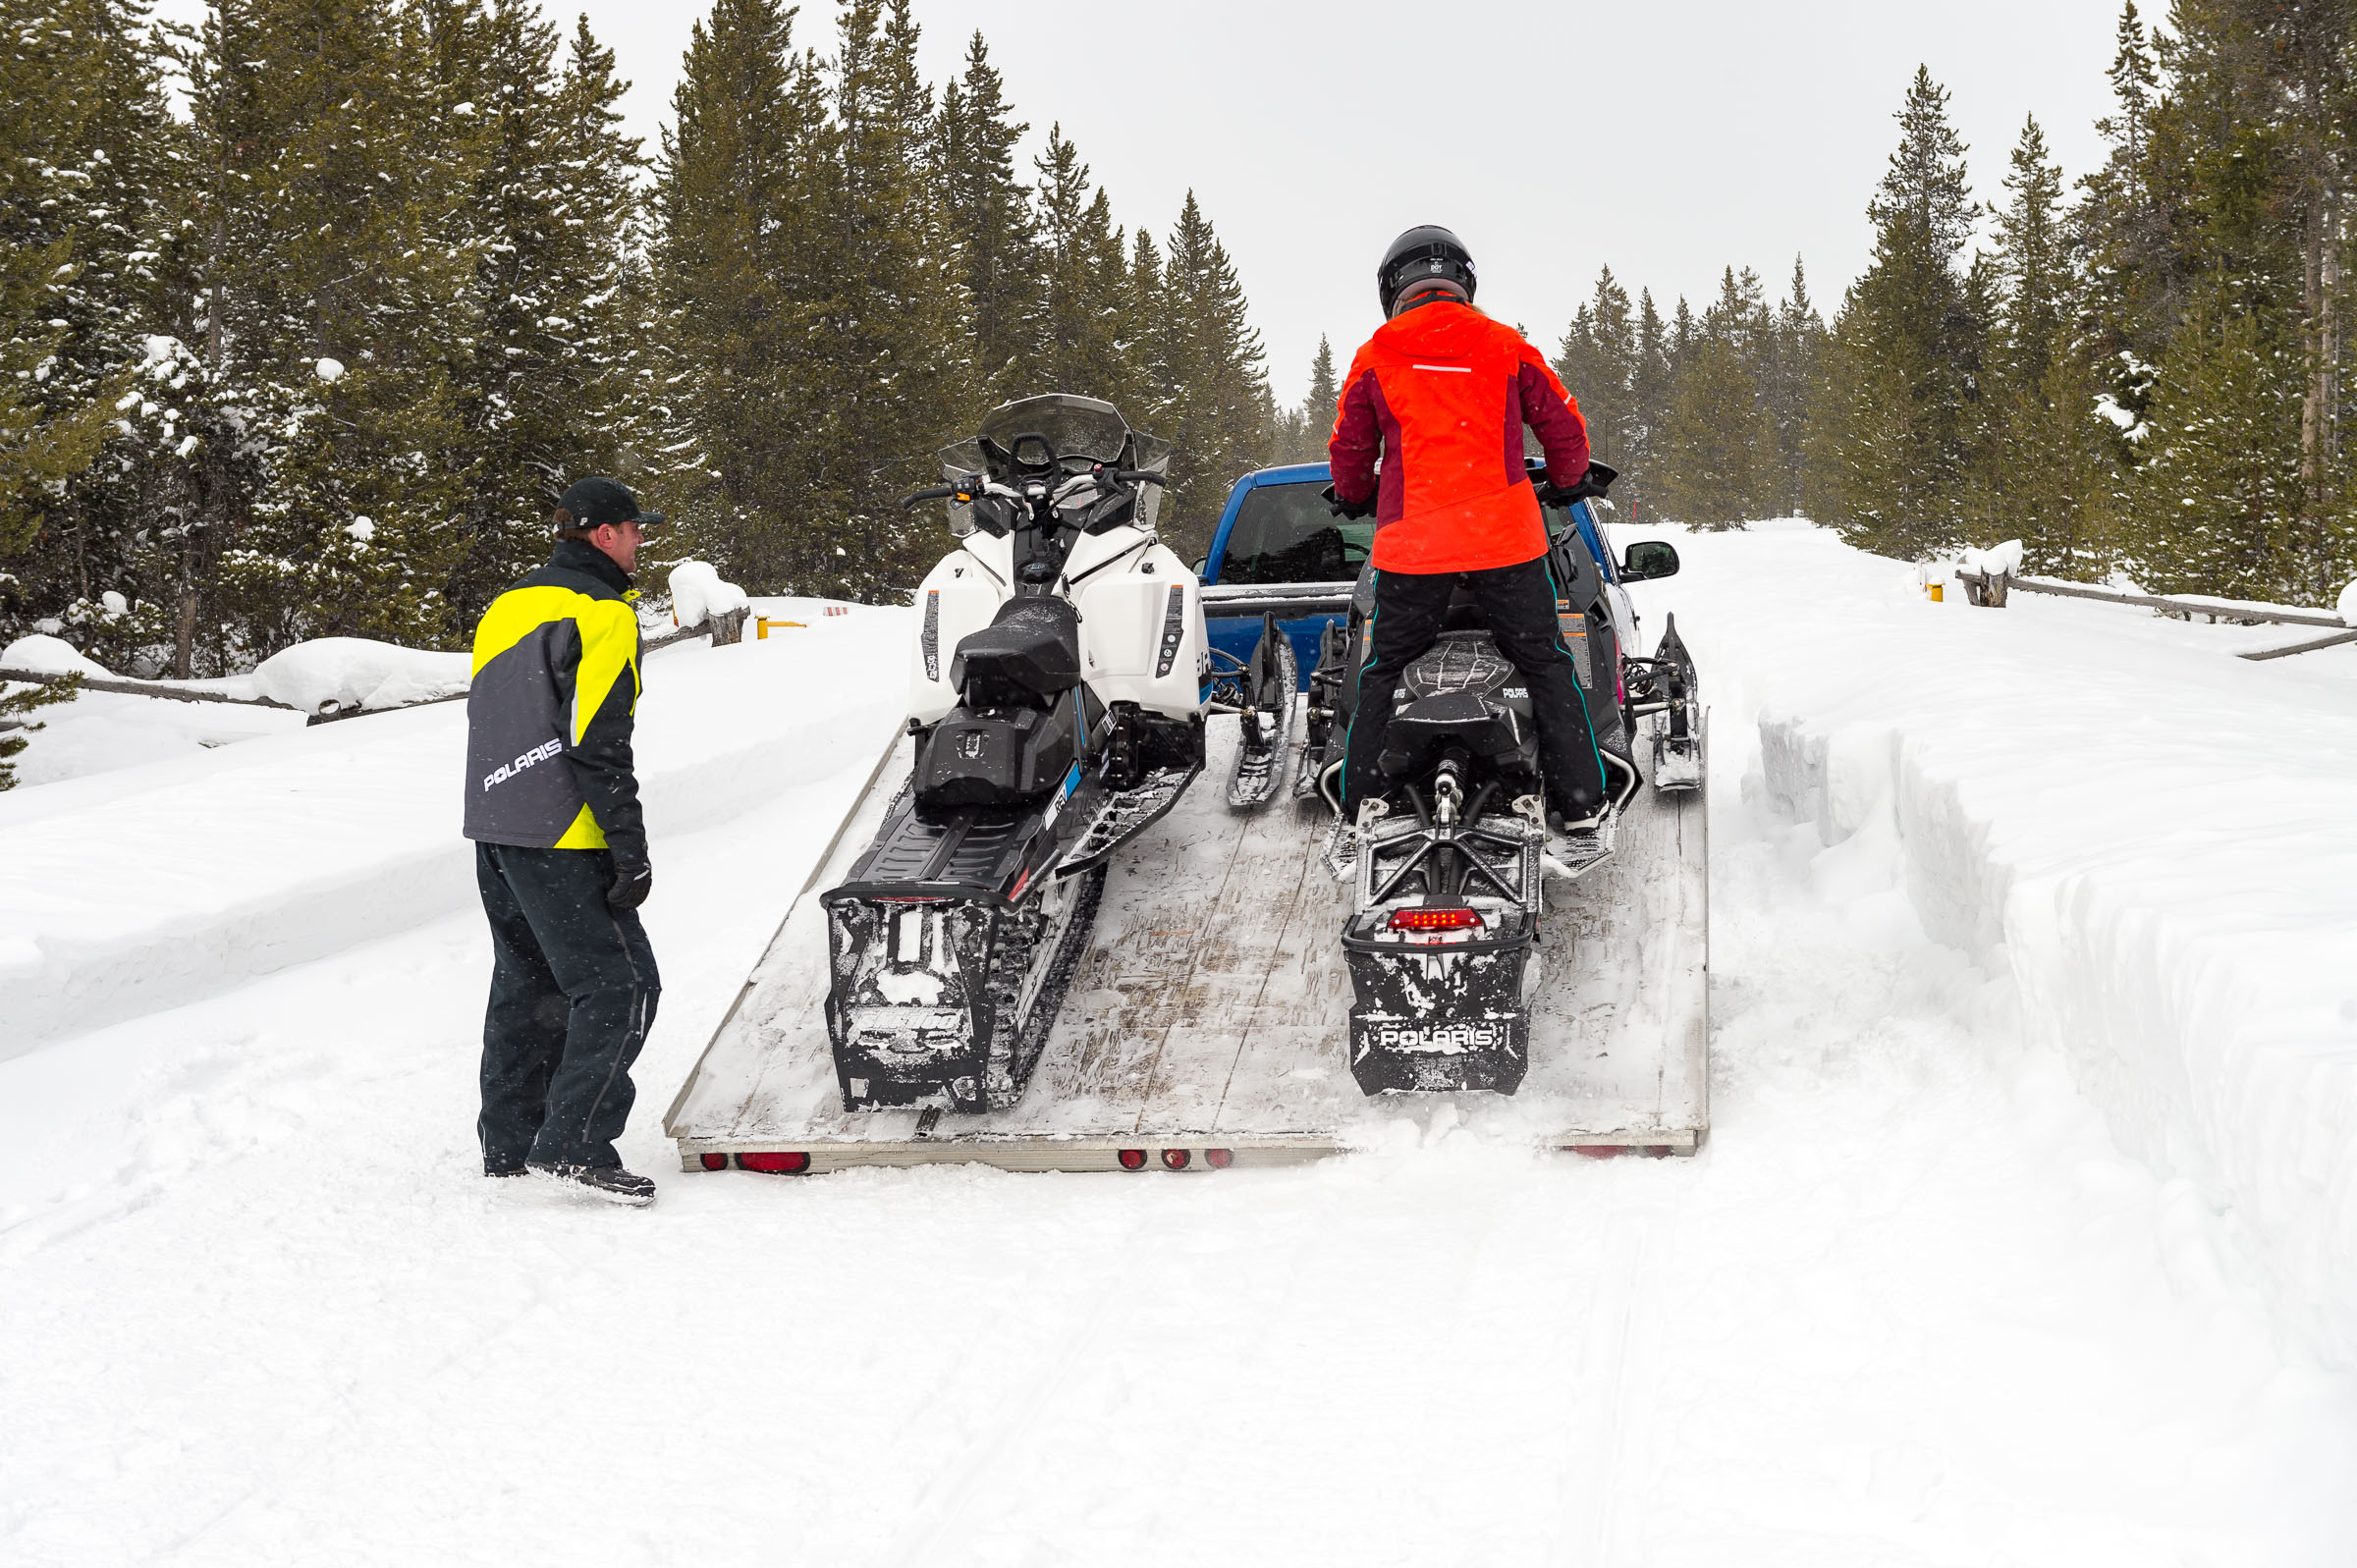 flatbed snowmobile trailers are open to the elements